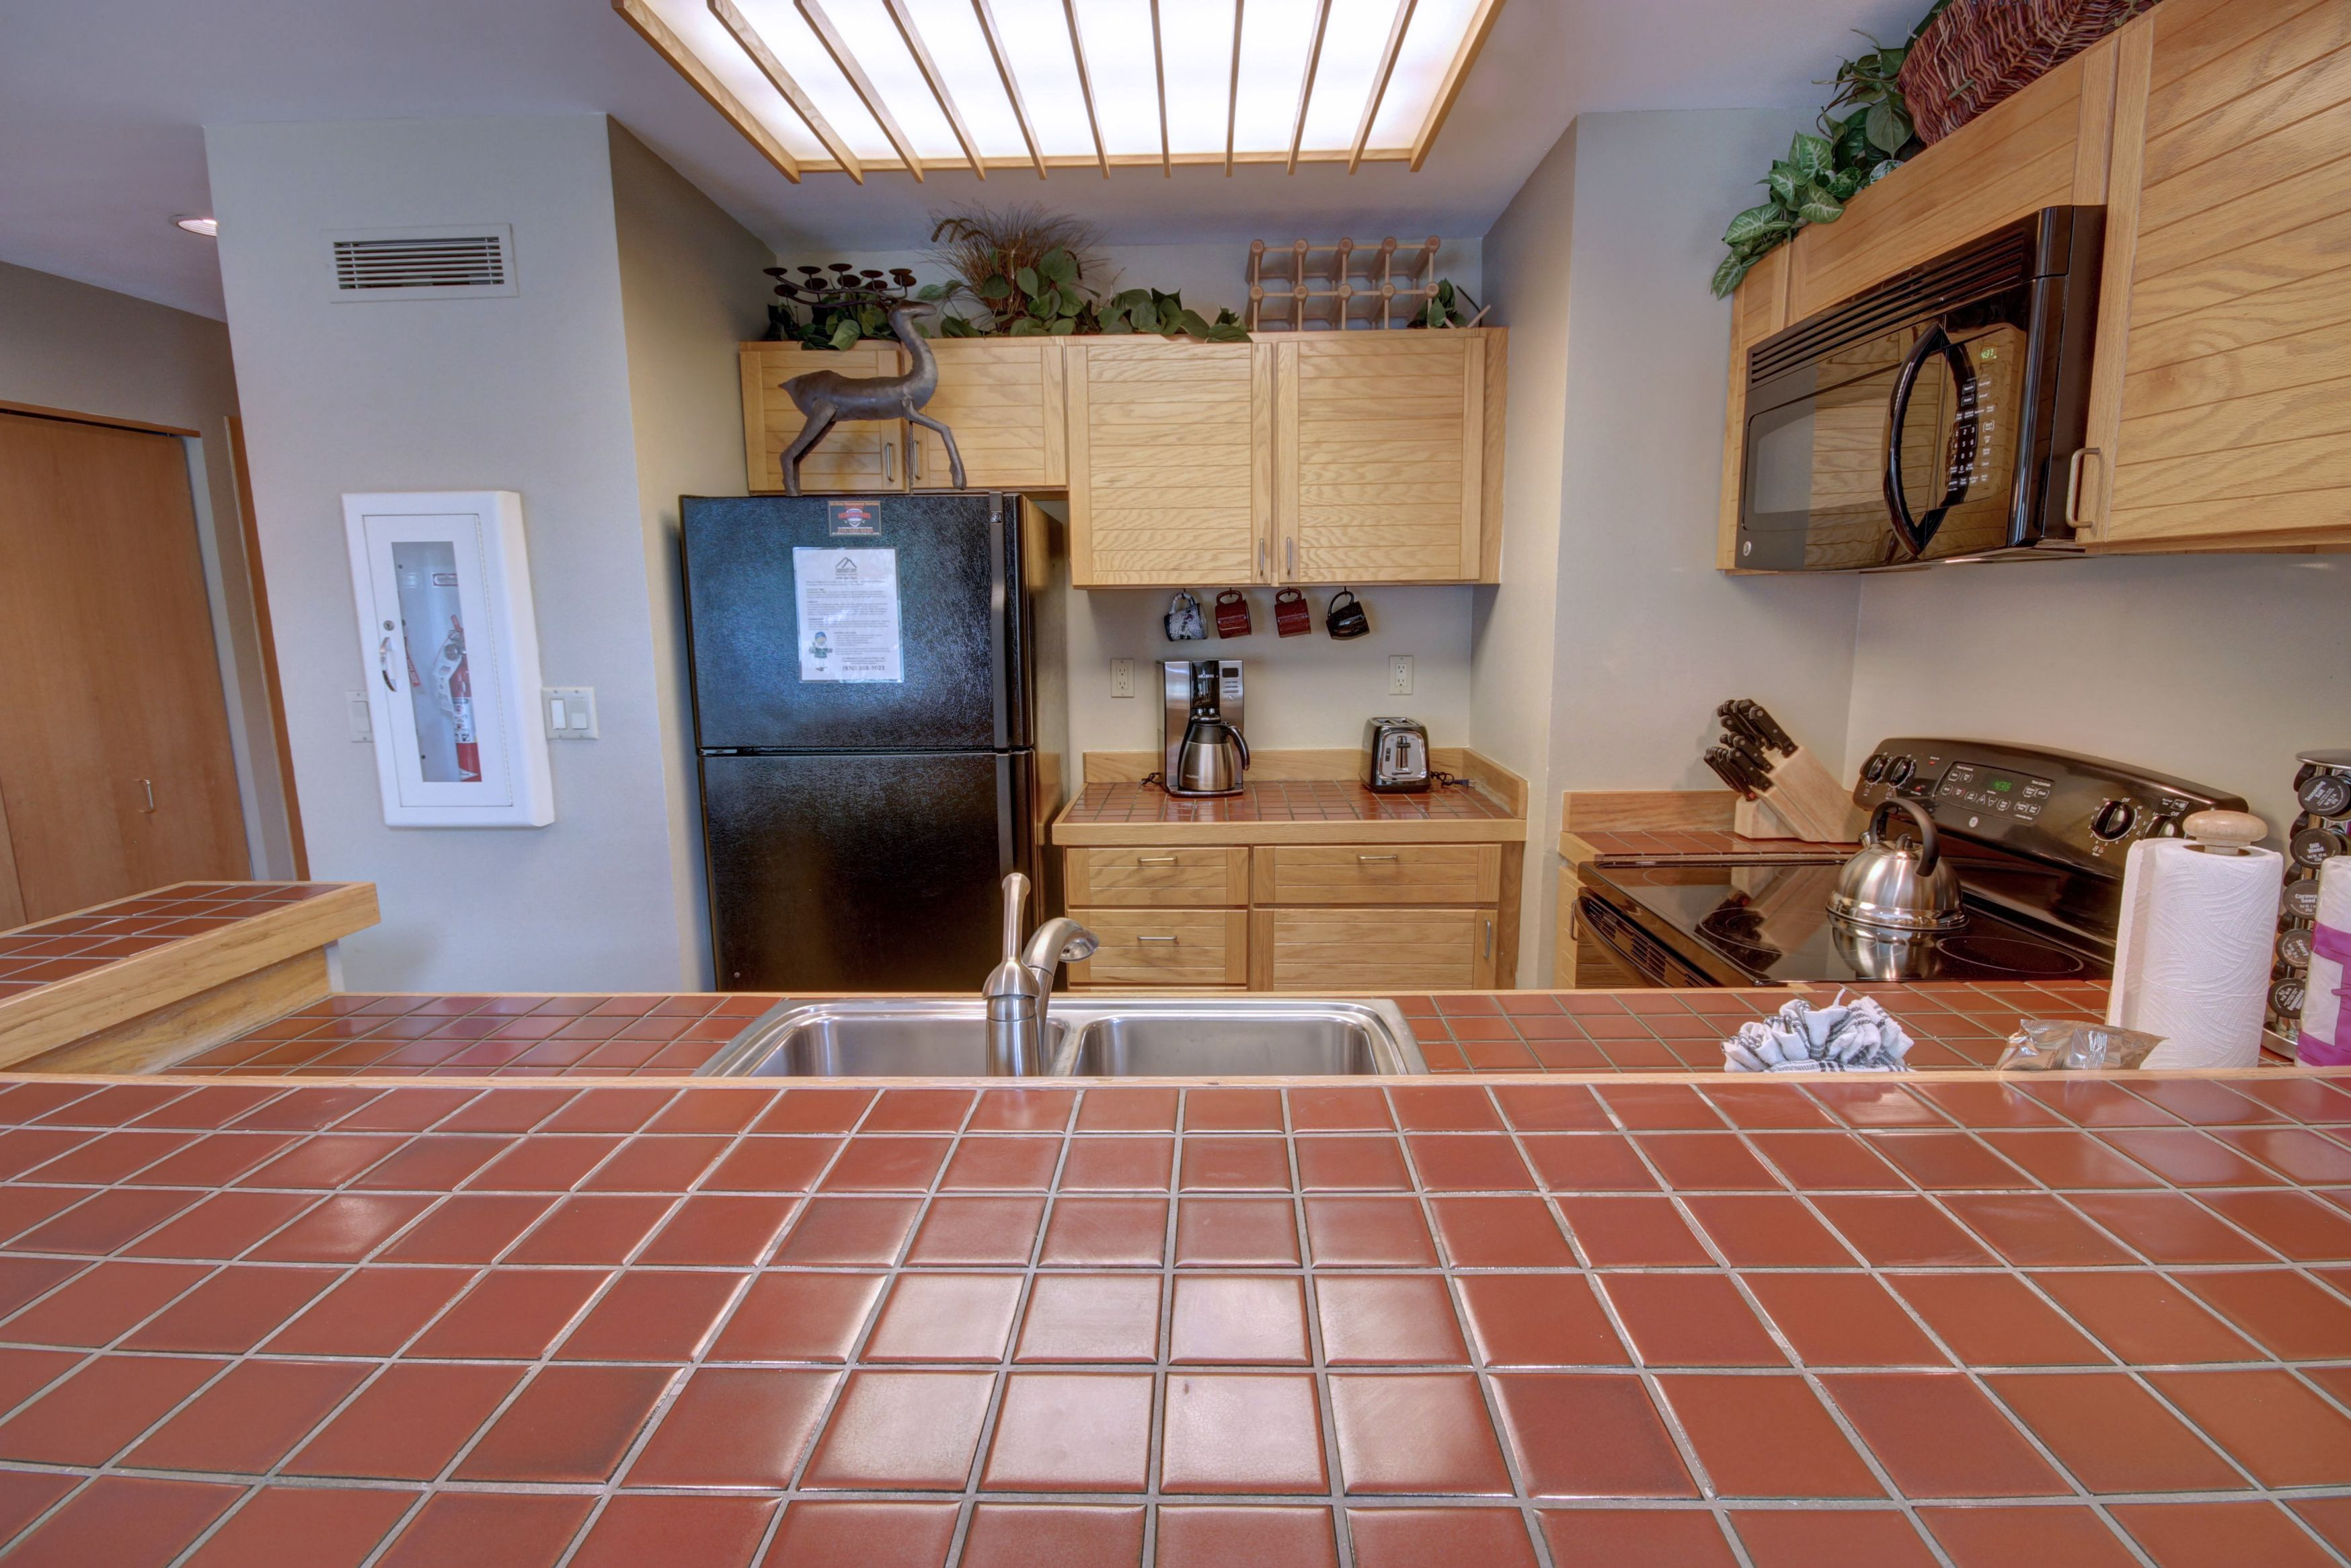 Kitchen with breakfast bar and coffee maker perfect for those early mornings